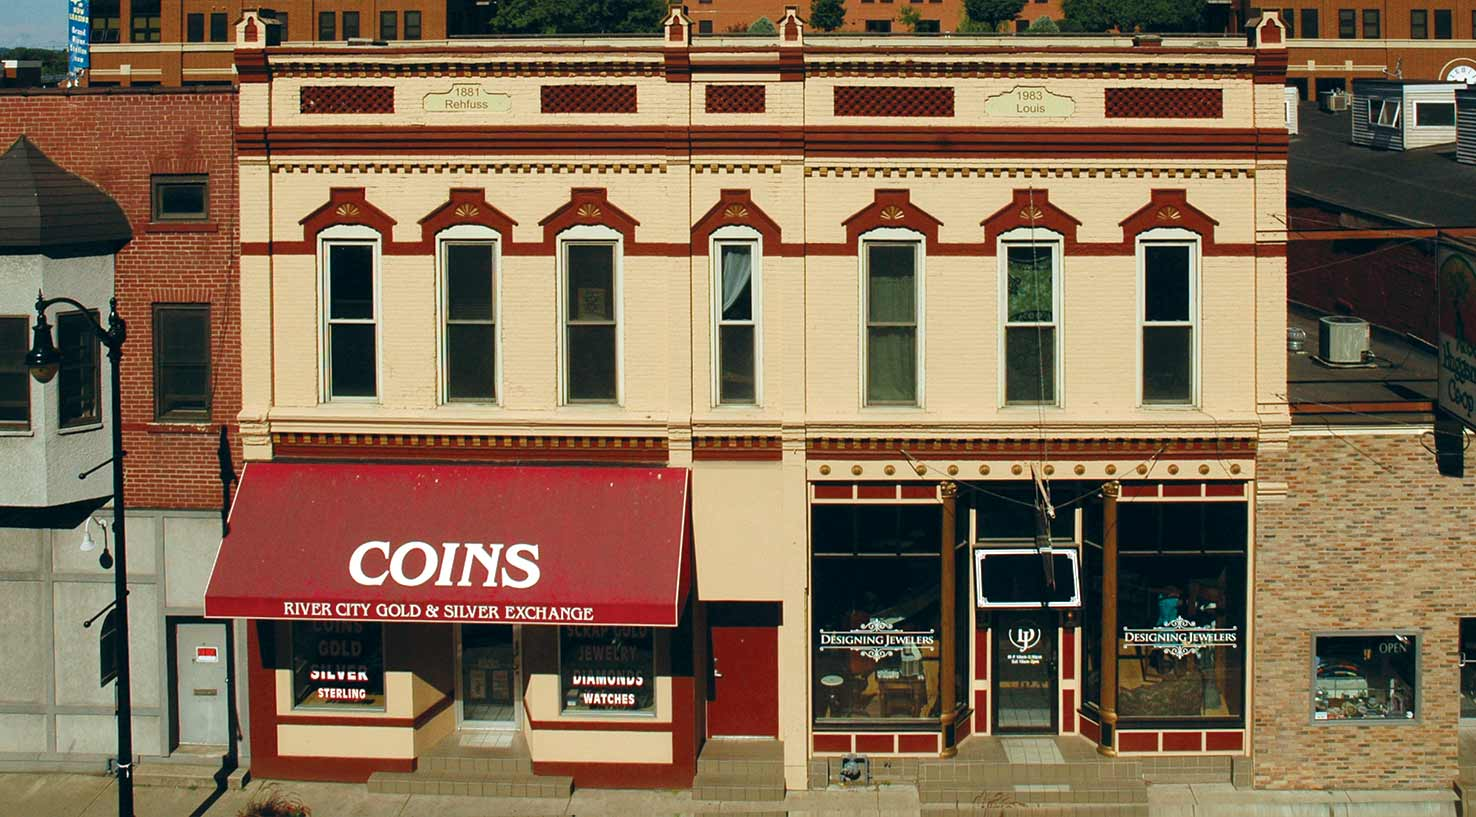 The historic Frederick Rehfuss Building in LaCrosse, WI, renovated by local contractors